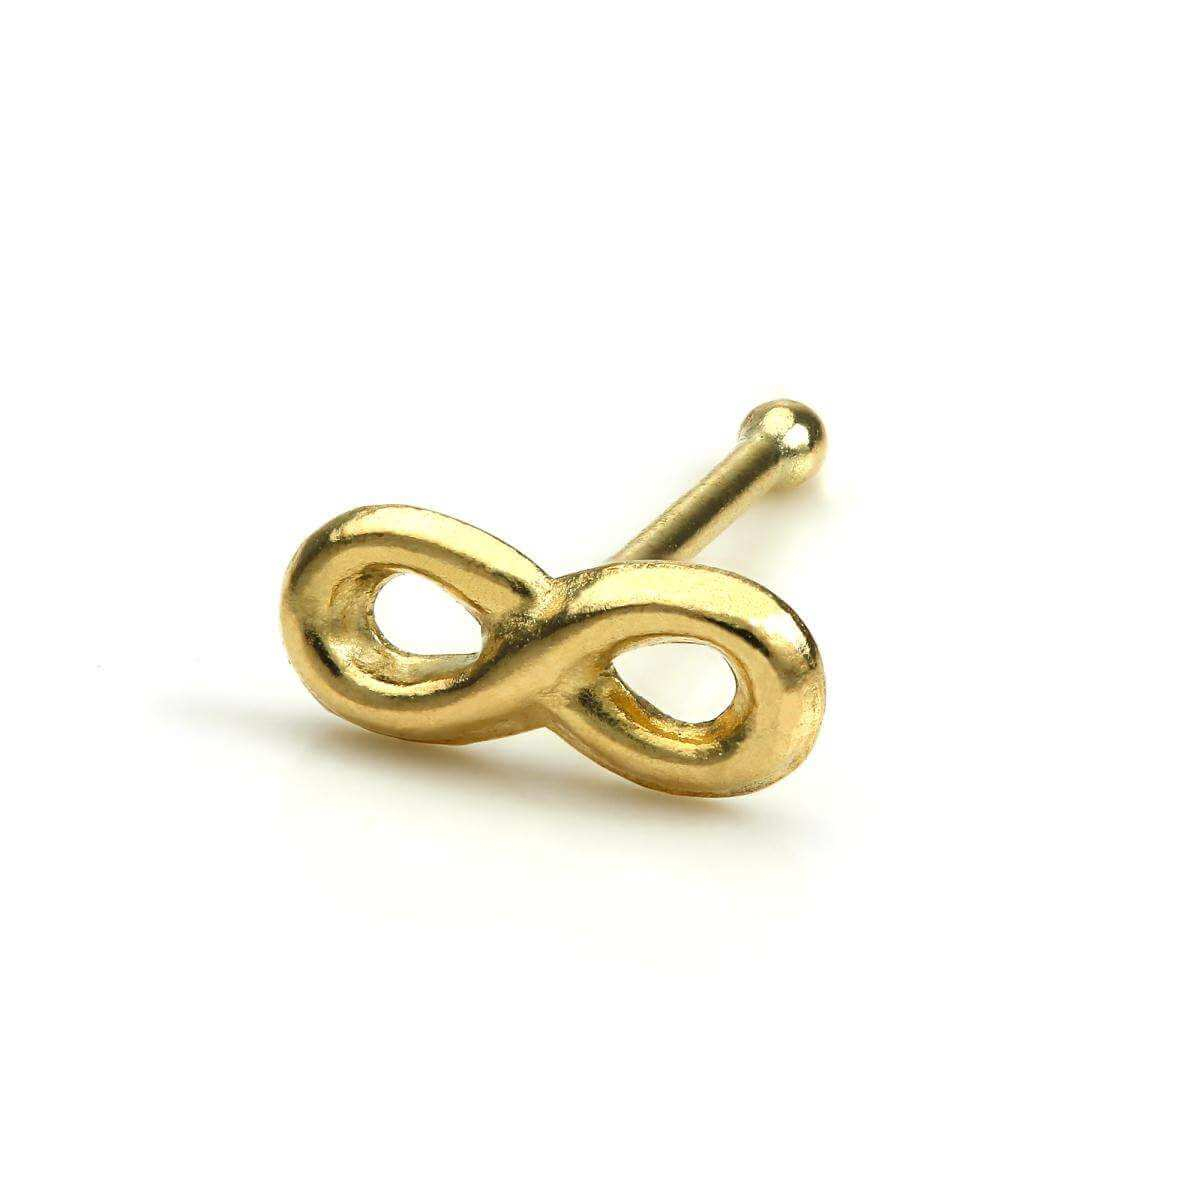 9ct Gold Infinity Loop Ball End Nose Stud